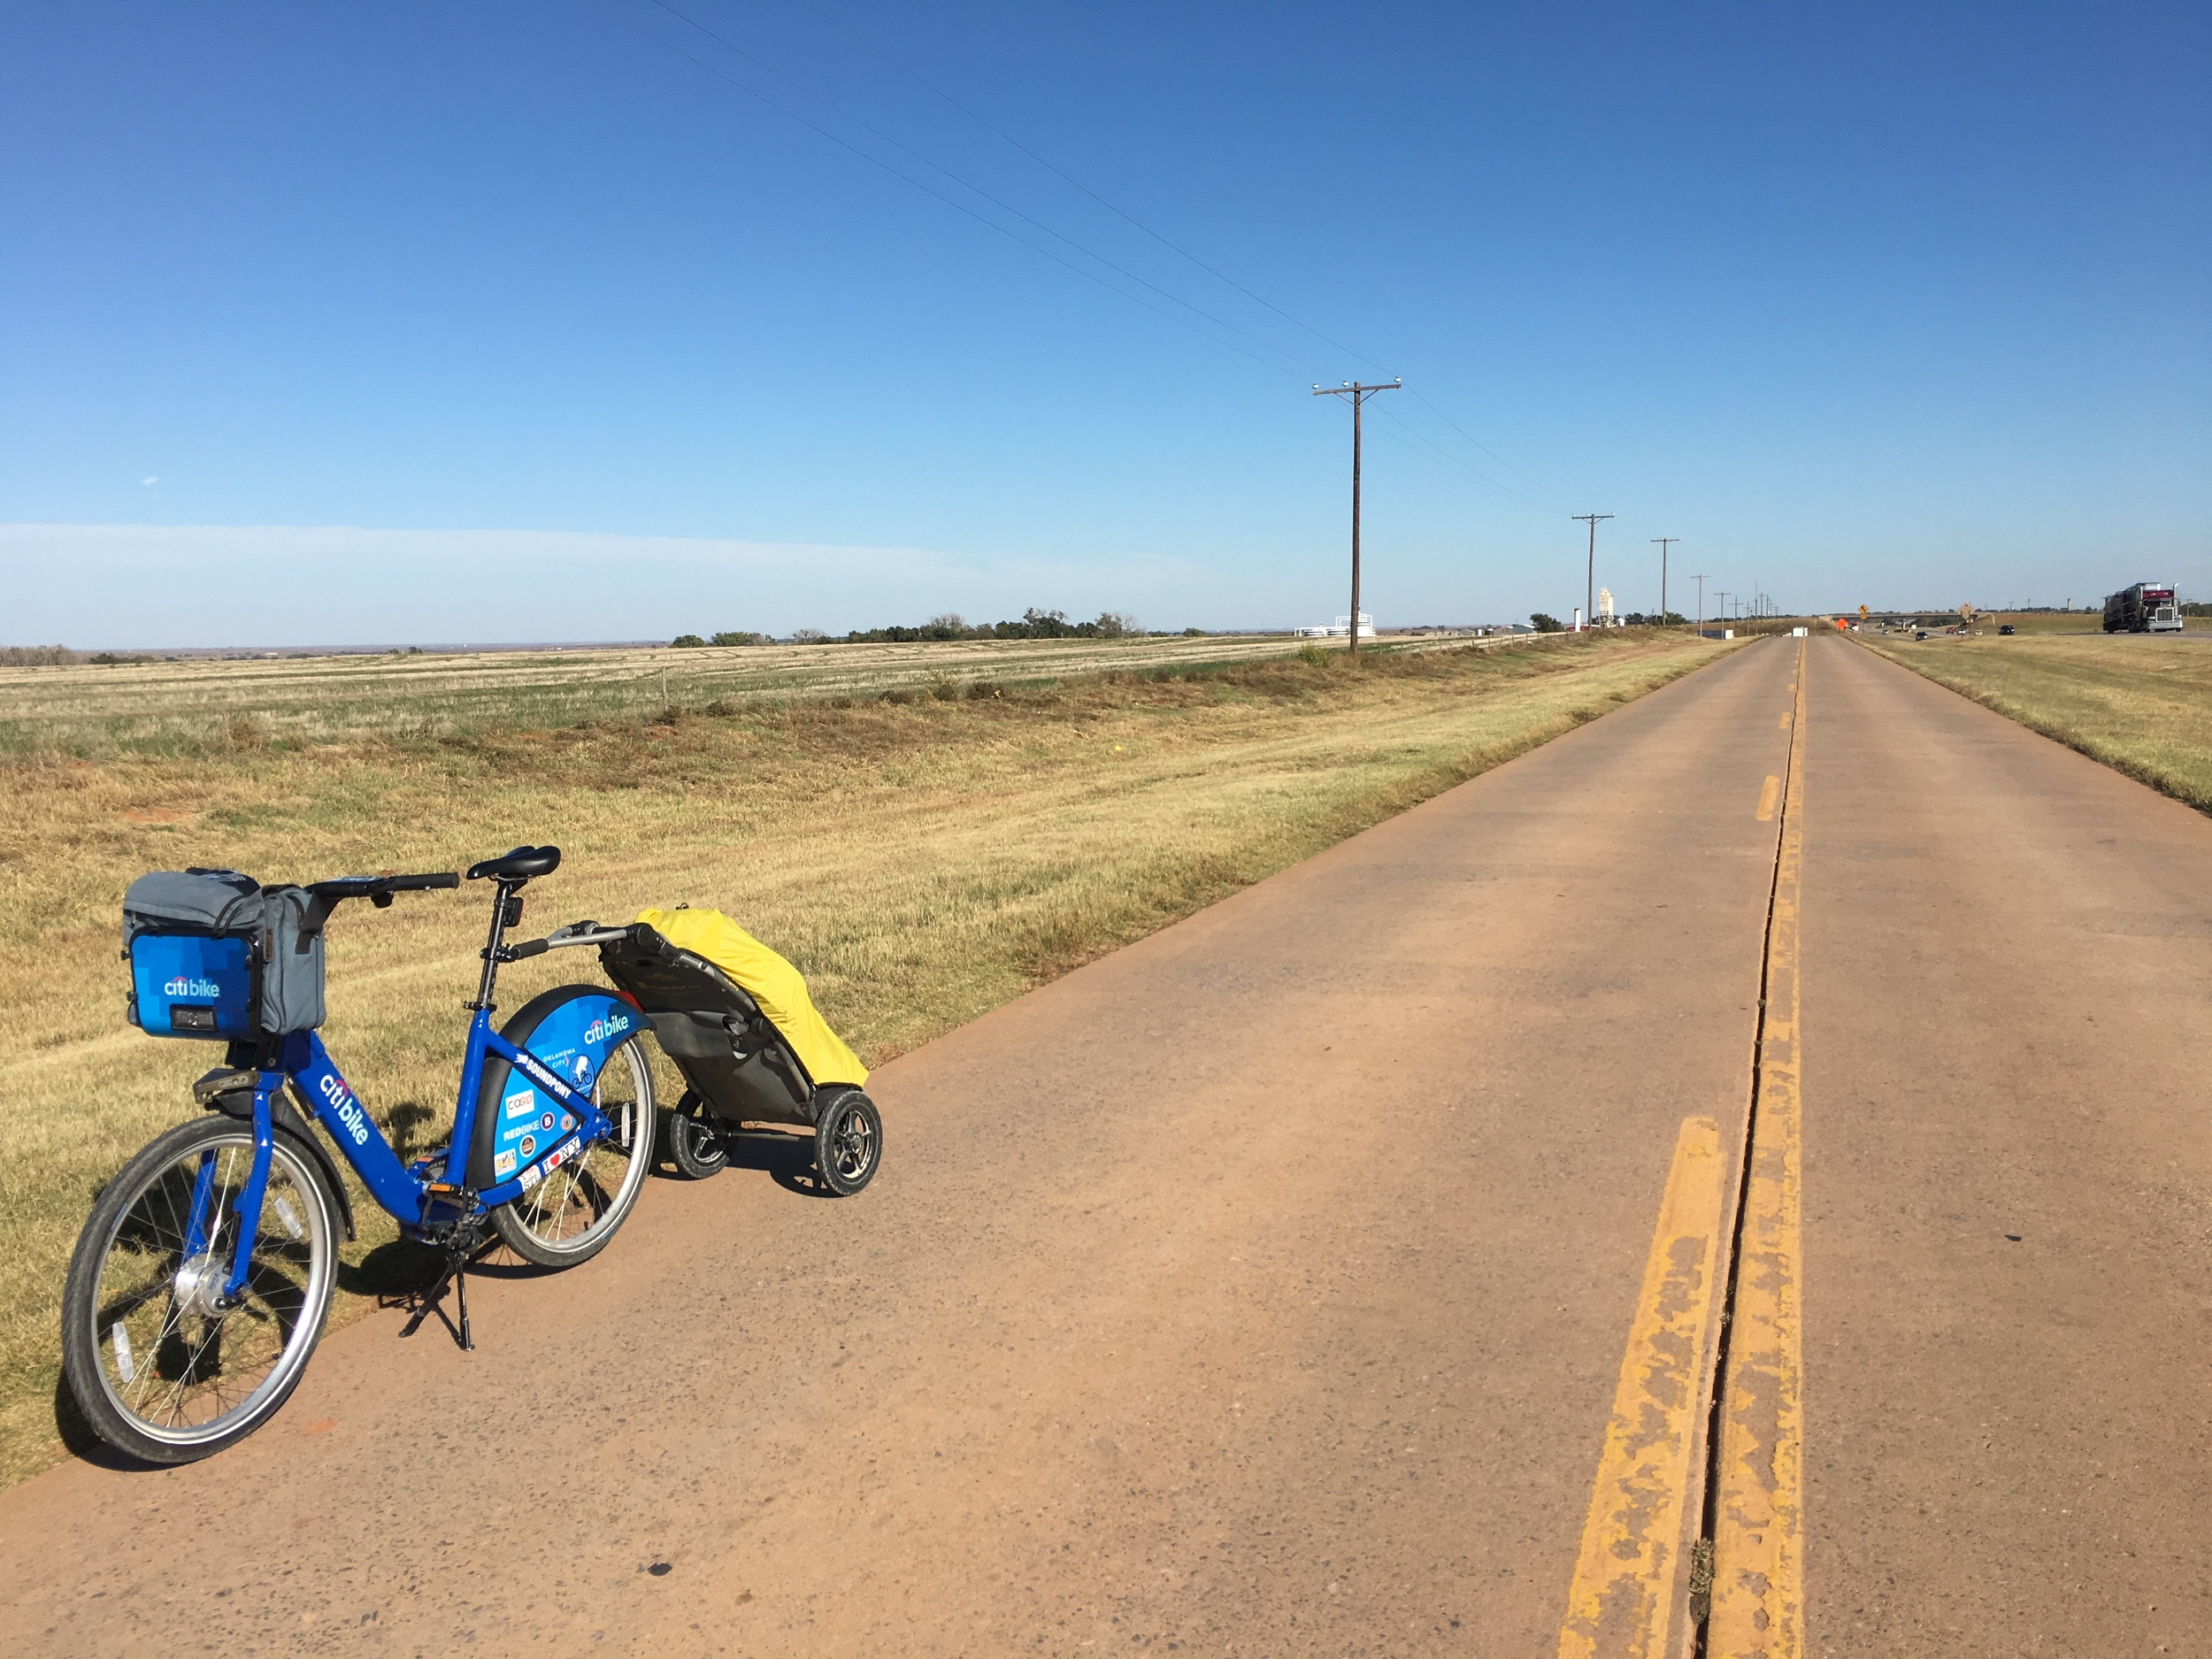 Approaching Elk City, OK on Route 66.